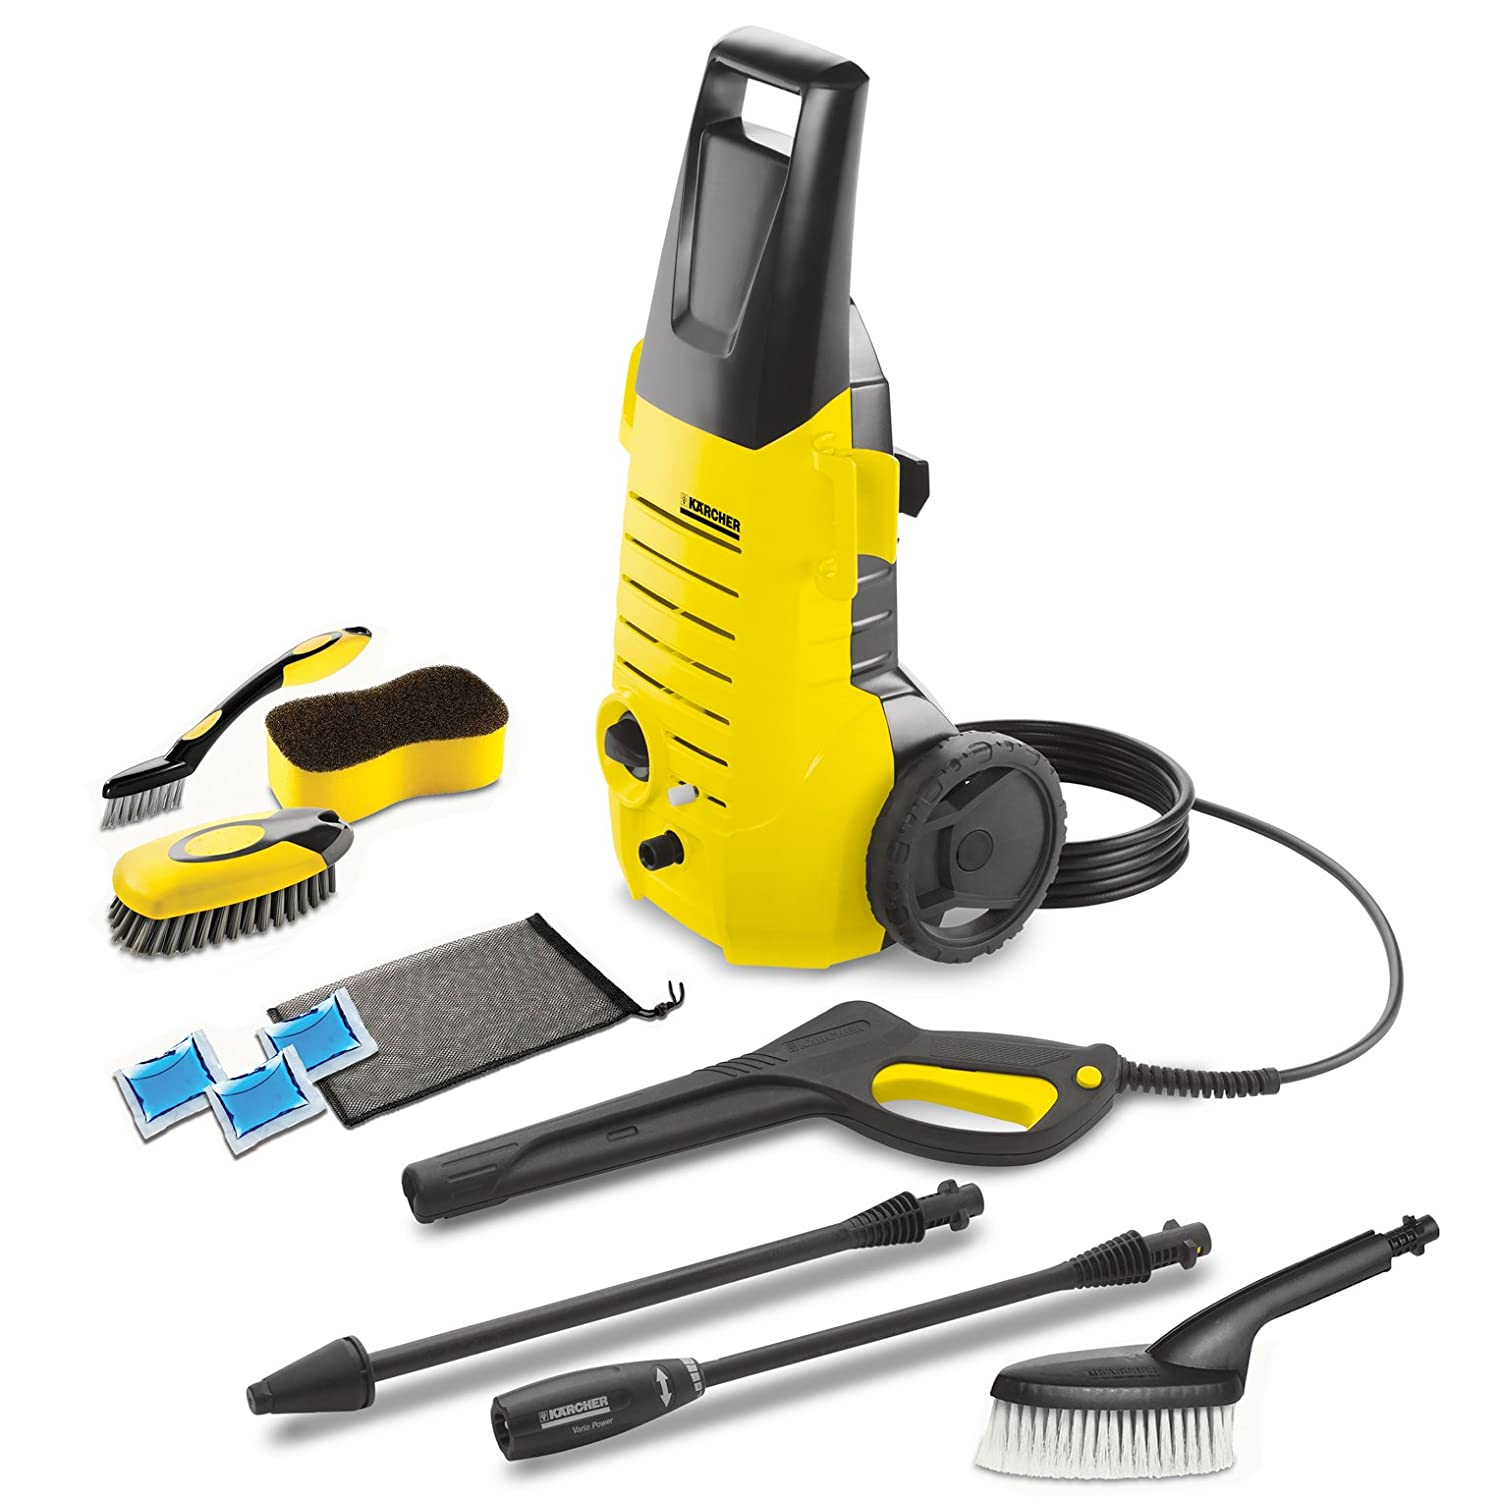 karcher pressure washer reviews karcher power washer. Black Bedroom Furniture Sets. Home Design Ideas